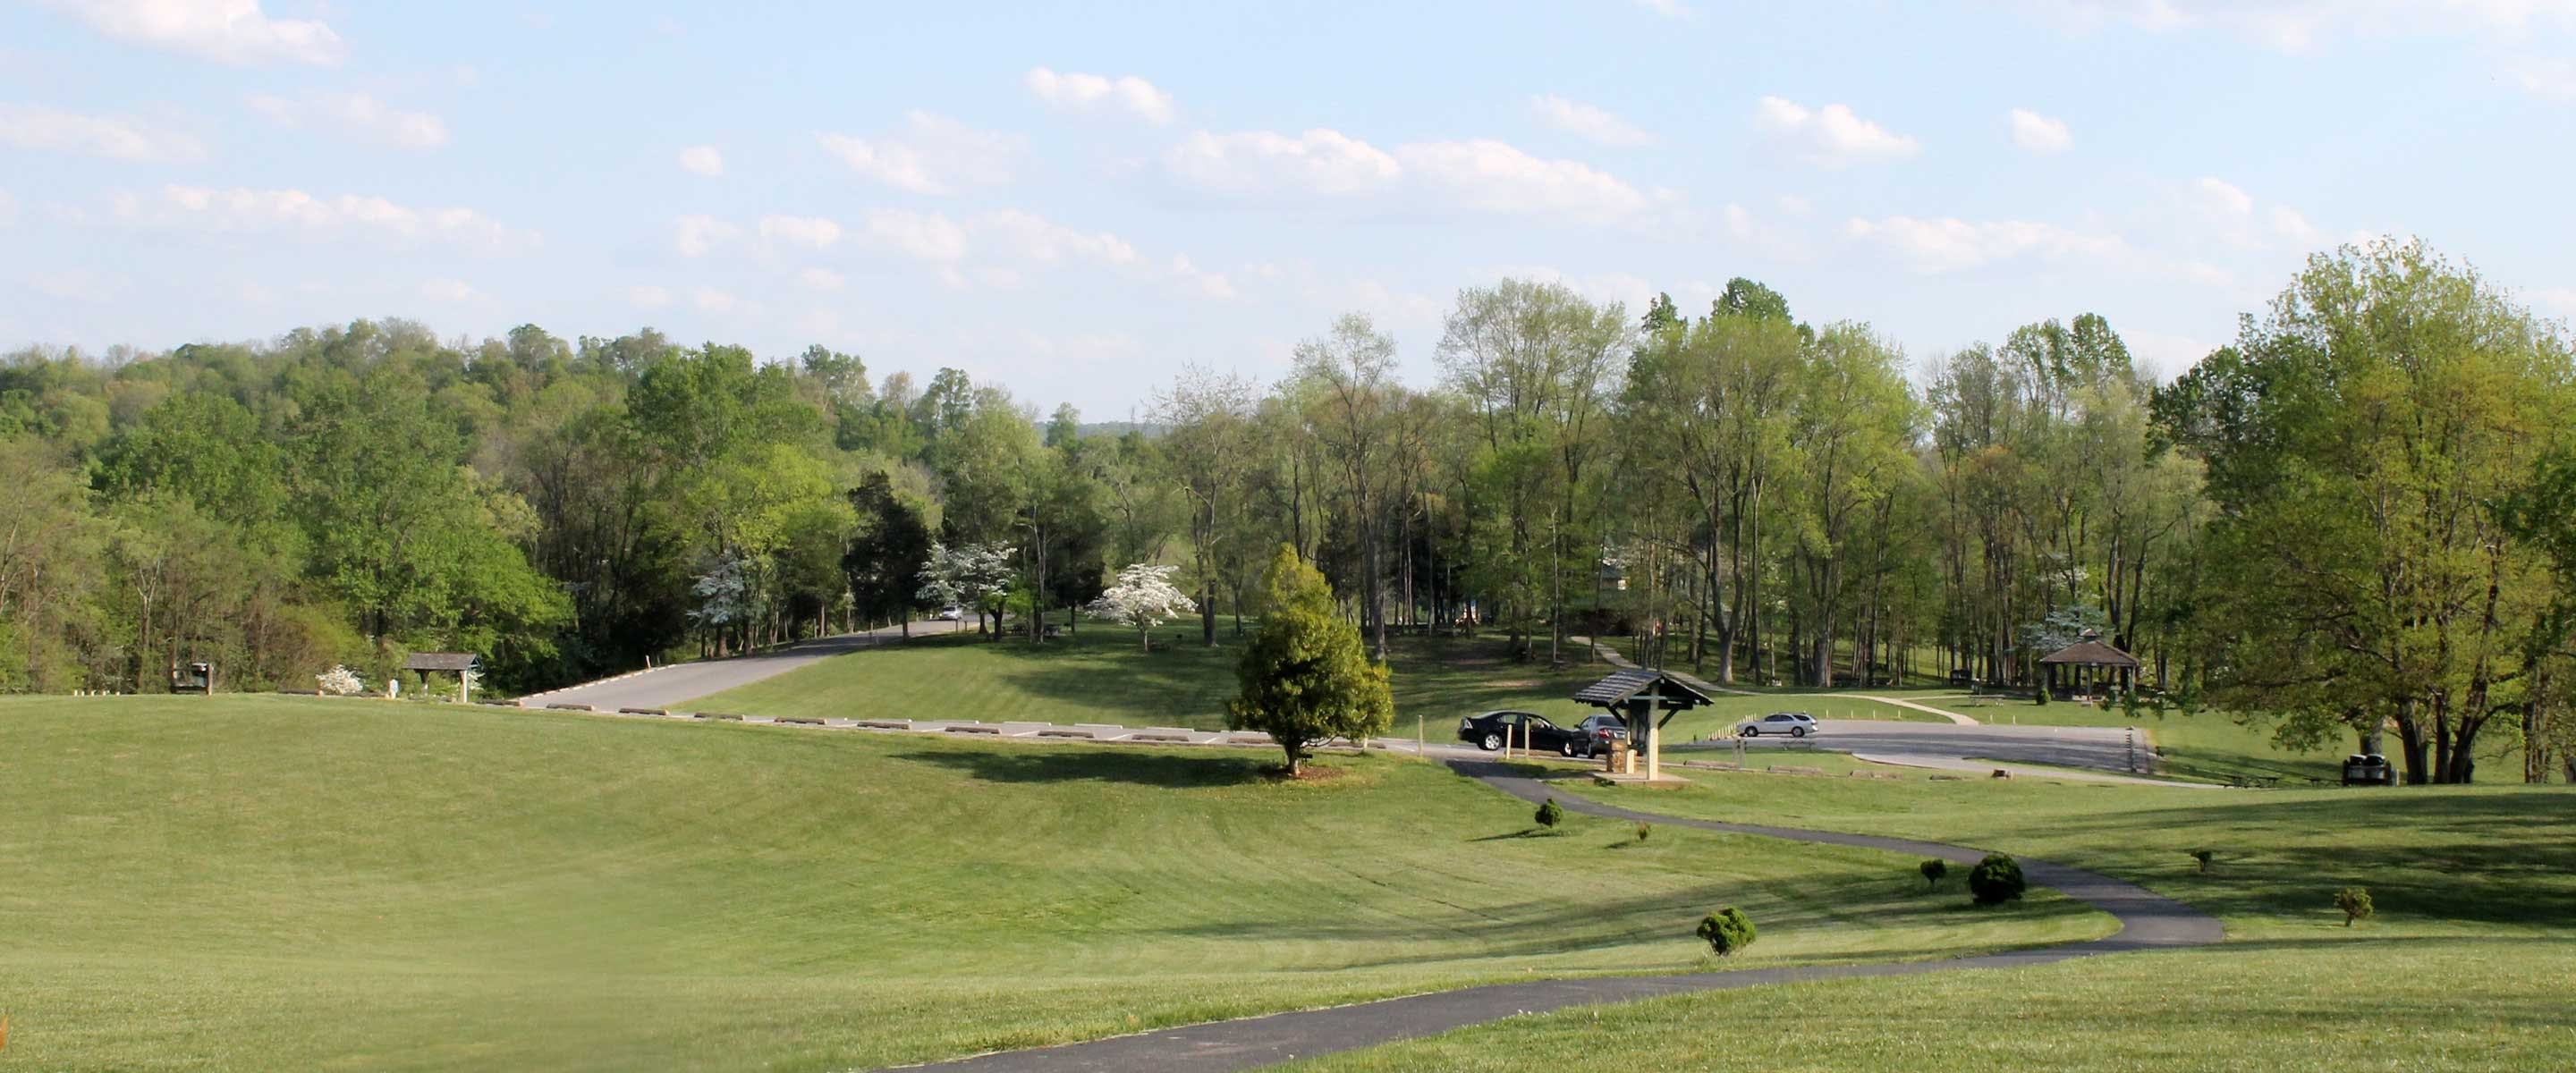 Panoramic view of hillside and paved trail at Hayswood Nature Preserve